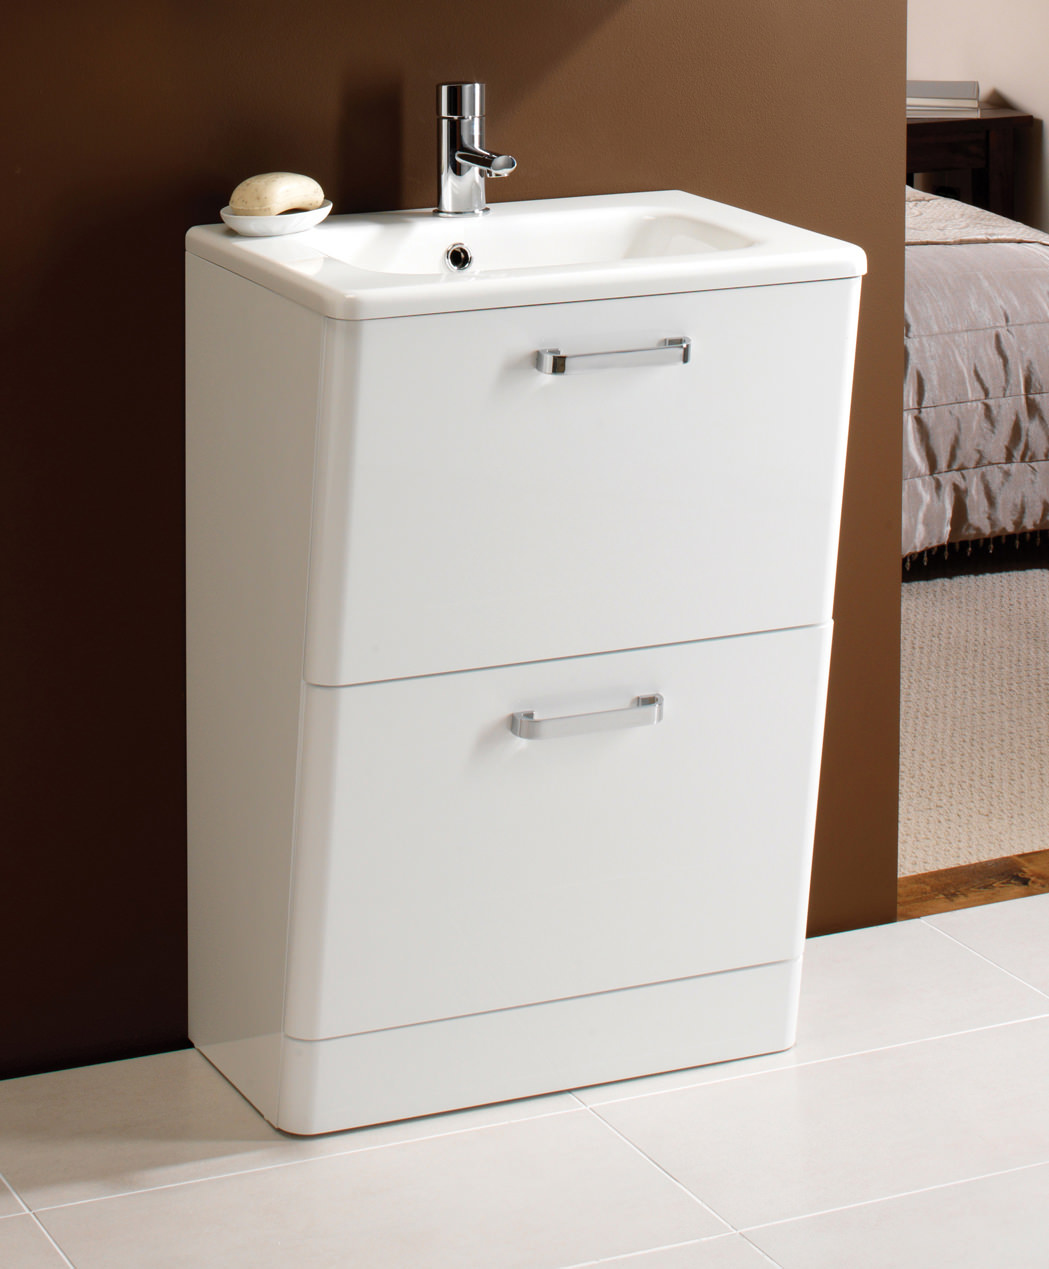 Hib palamas 600mm floor standing vanity unit with basin white for Floor standing bathroom furniture